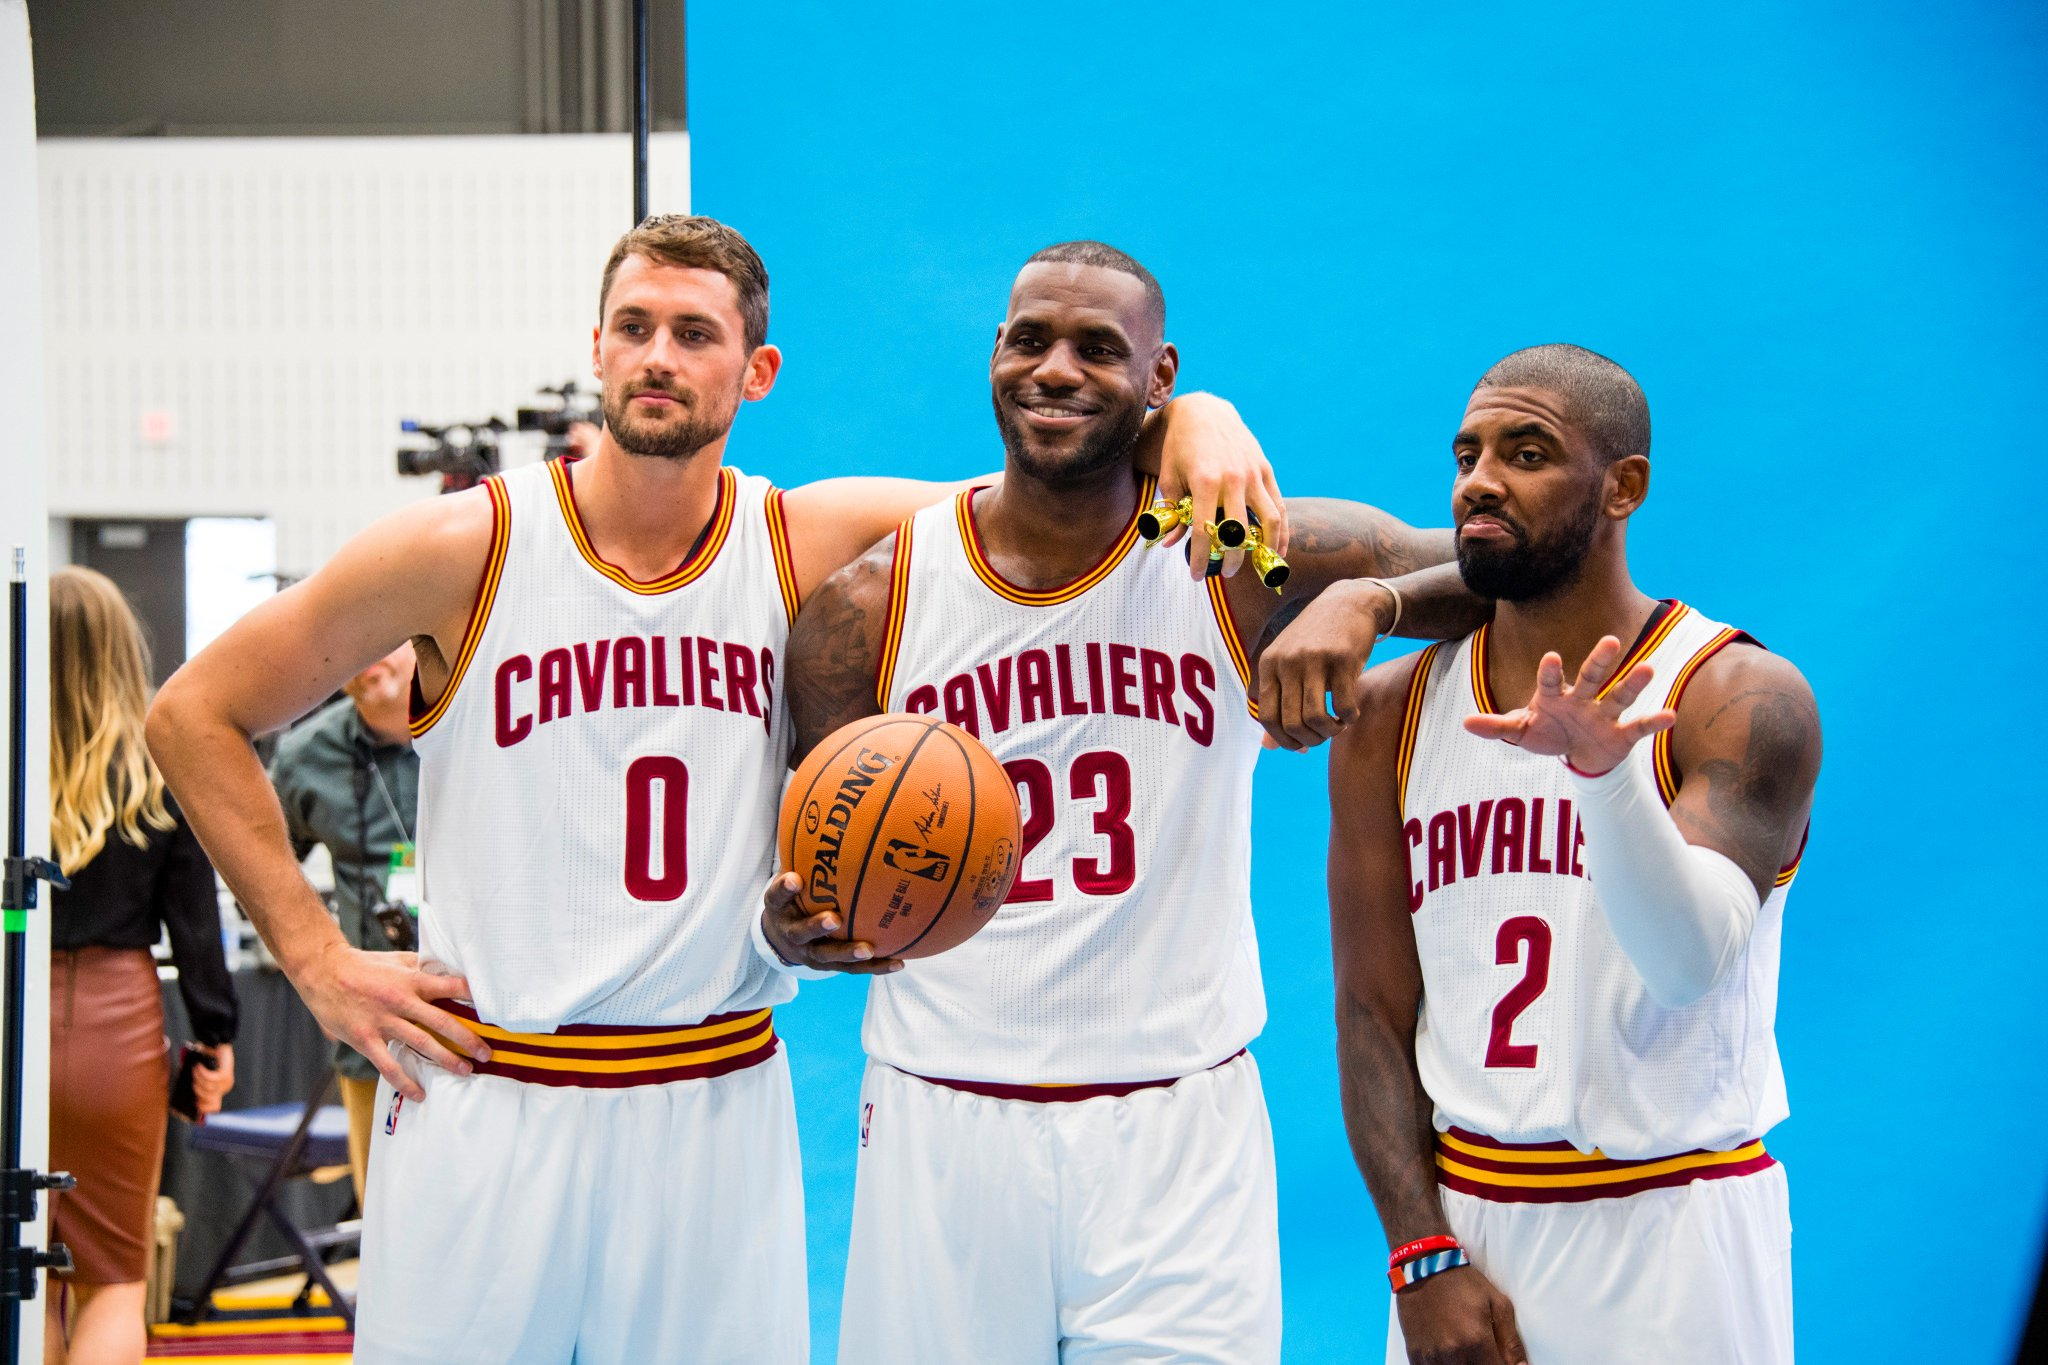 1st half scoring Big 3: 48 pts All other Cavs combined: 7 pts https://t.co/zd4V0Er1W1